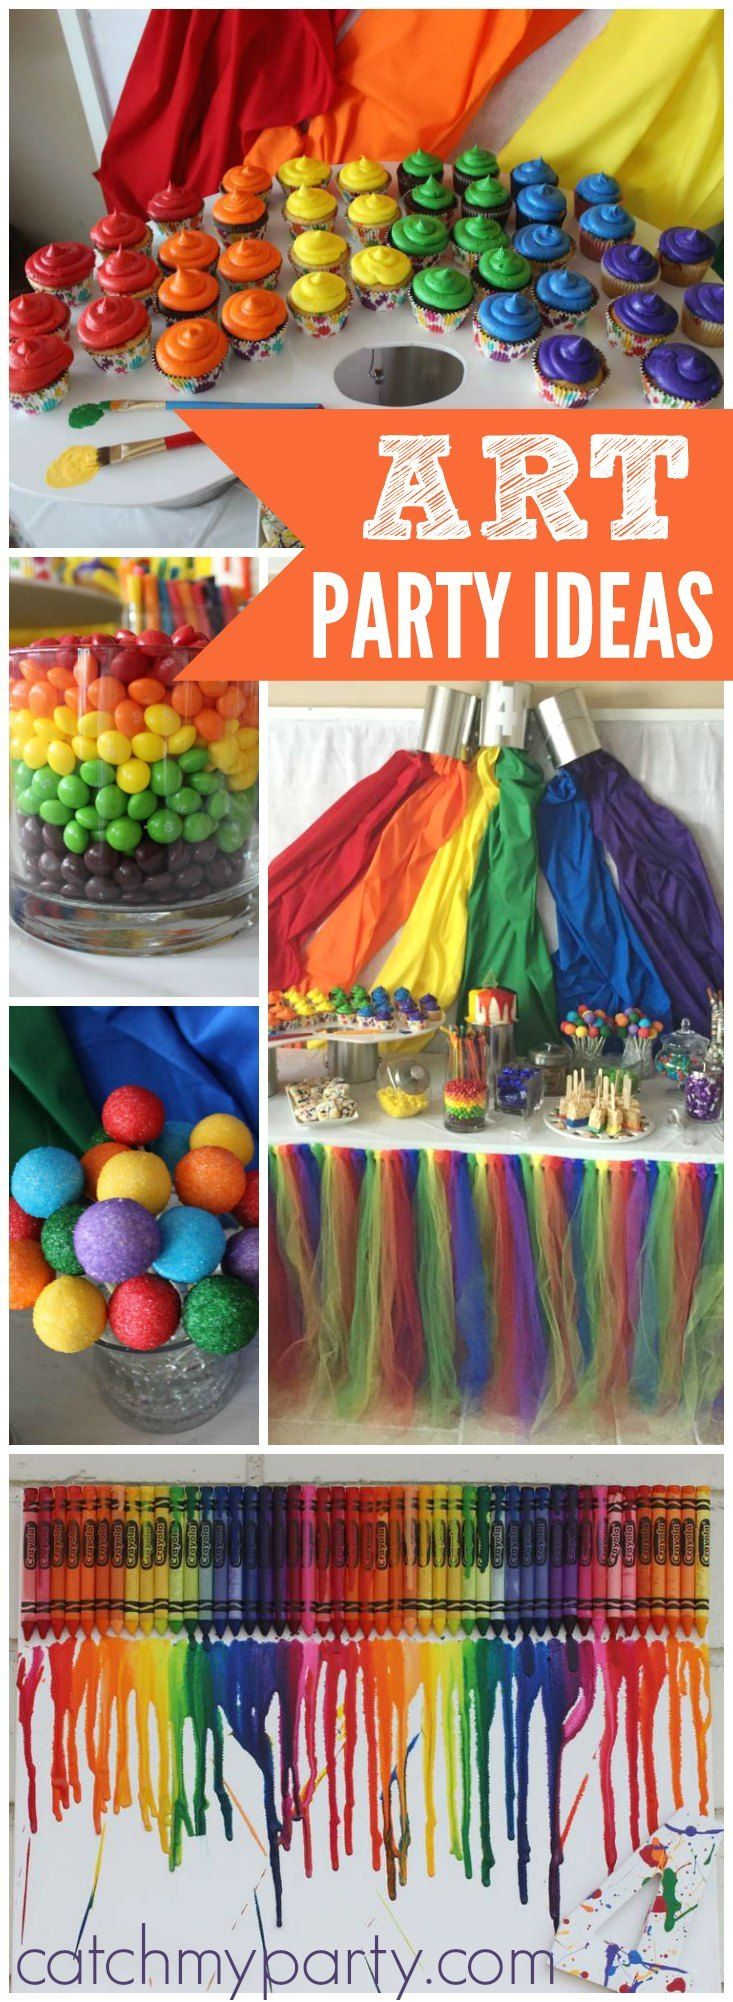 How great is this rainbow art party with lots of fun creative activities?! See more party ideas at CatchMyParty.com!